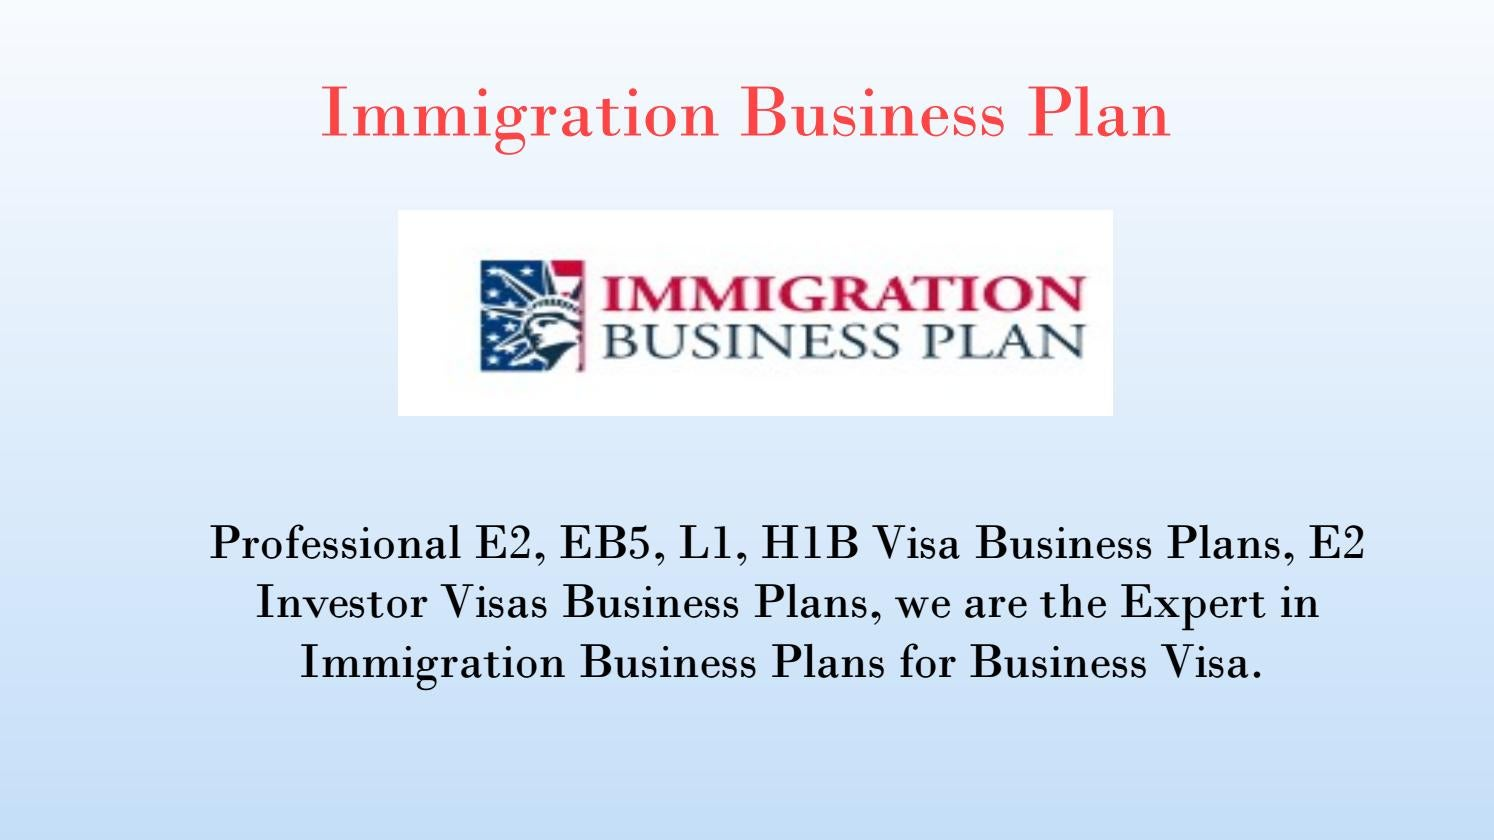 Immigration business plan by immigrationbusinessplan issuu accmission Image collections